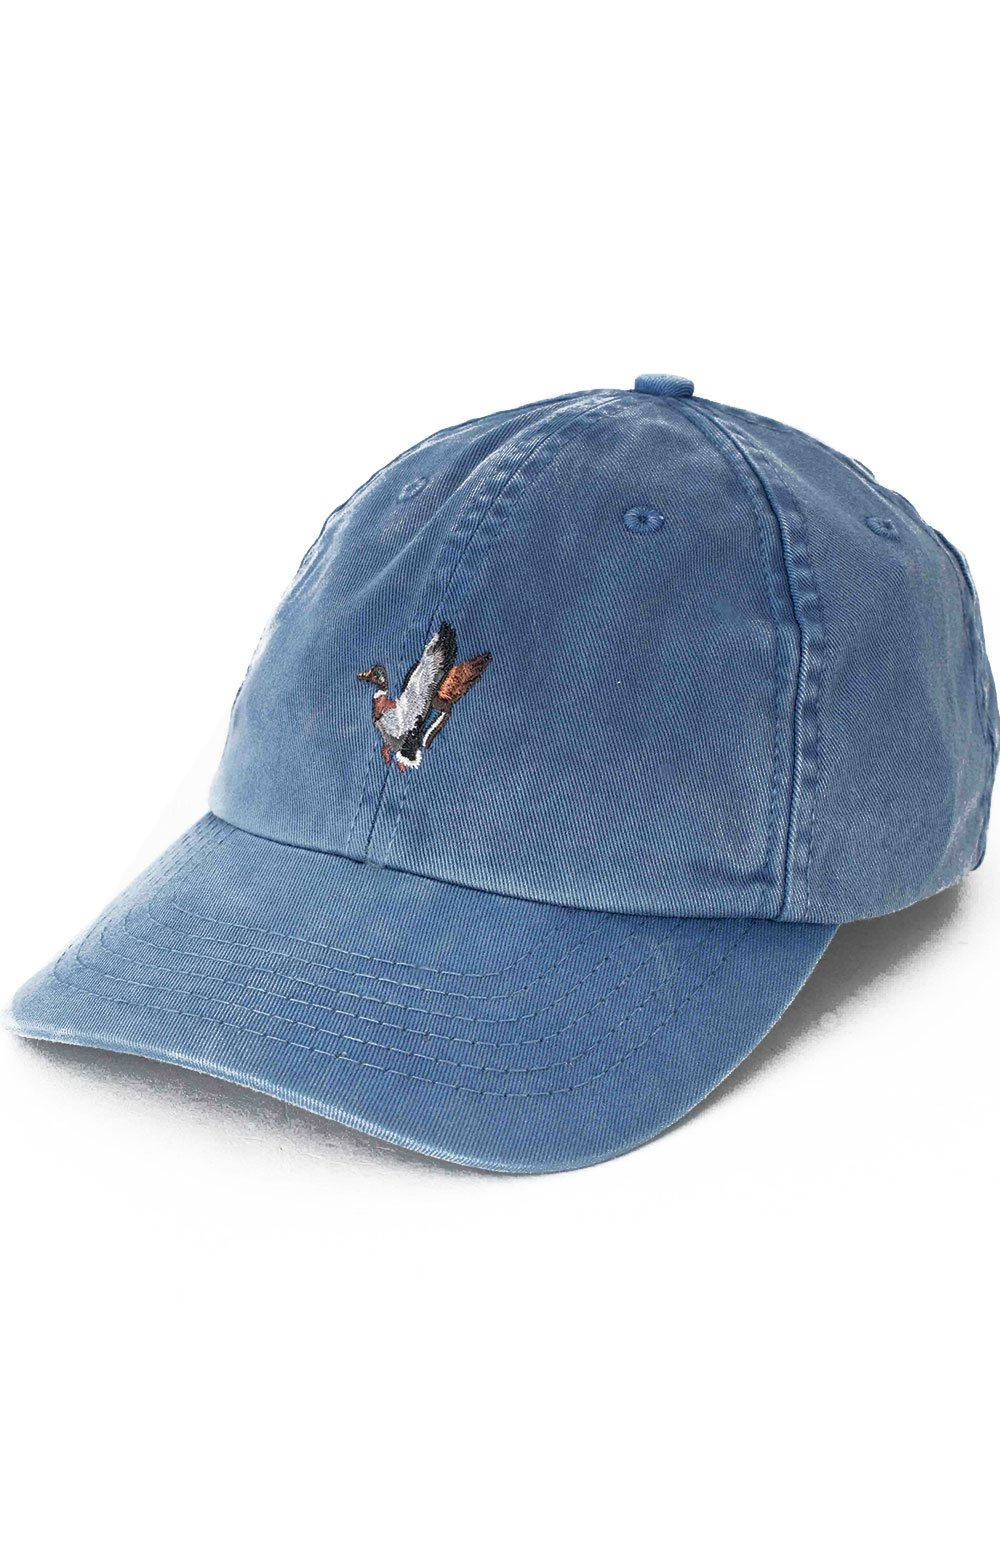 Washed Low Profile Cap - Faded Cobalt Duck